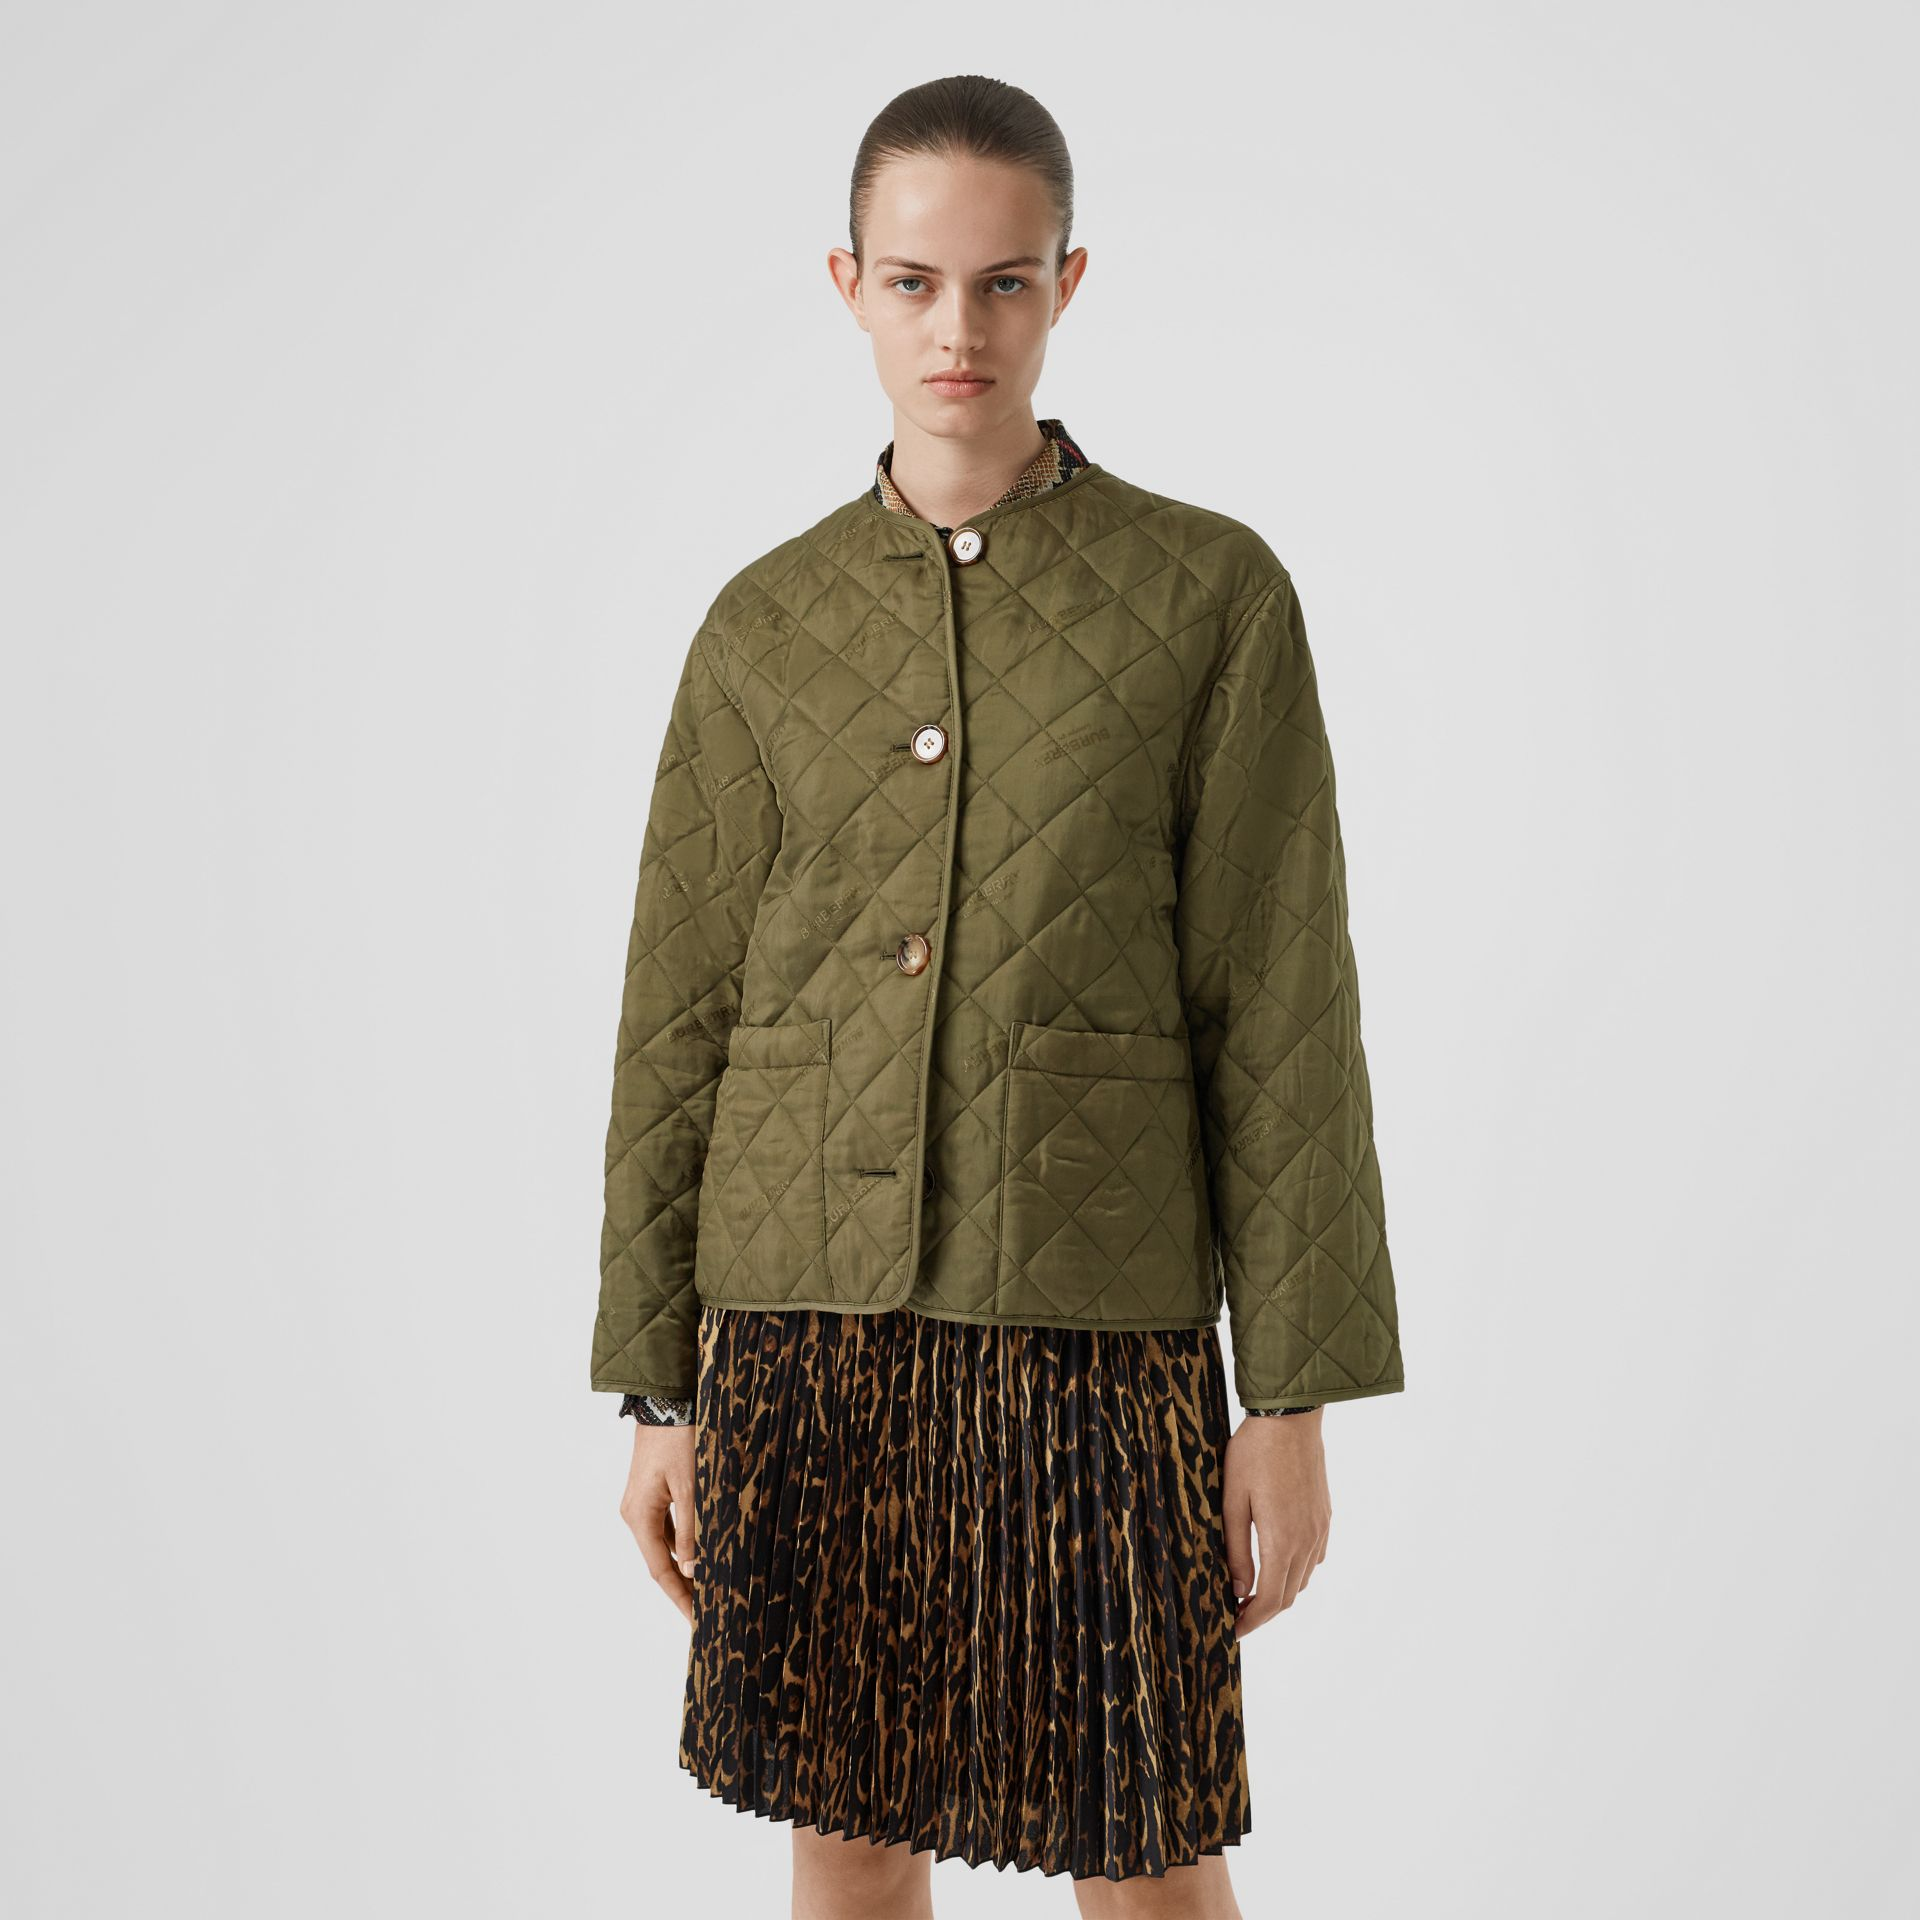 Logo Jacquard Diamond Quilted Jacket in Olive - Women | Burberry Canada - gallery image 5